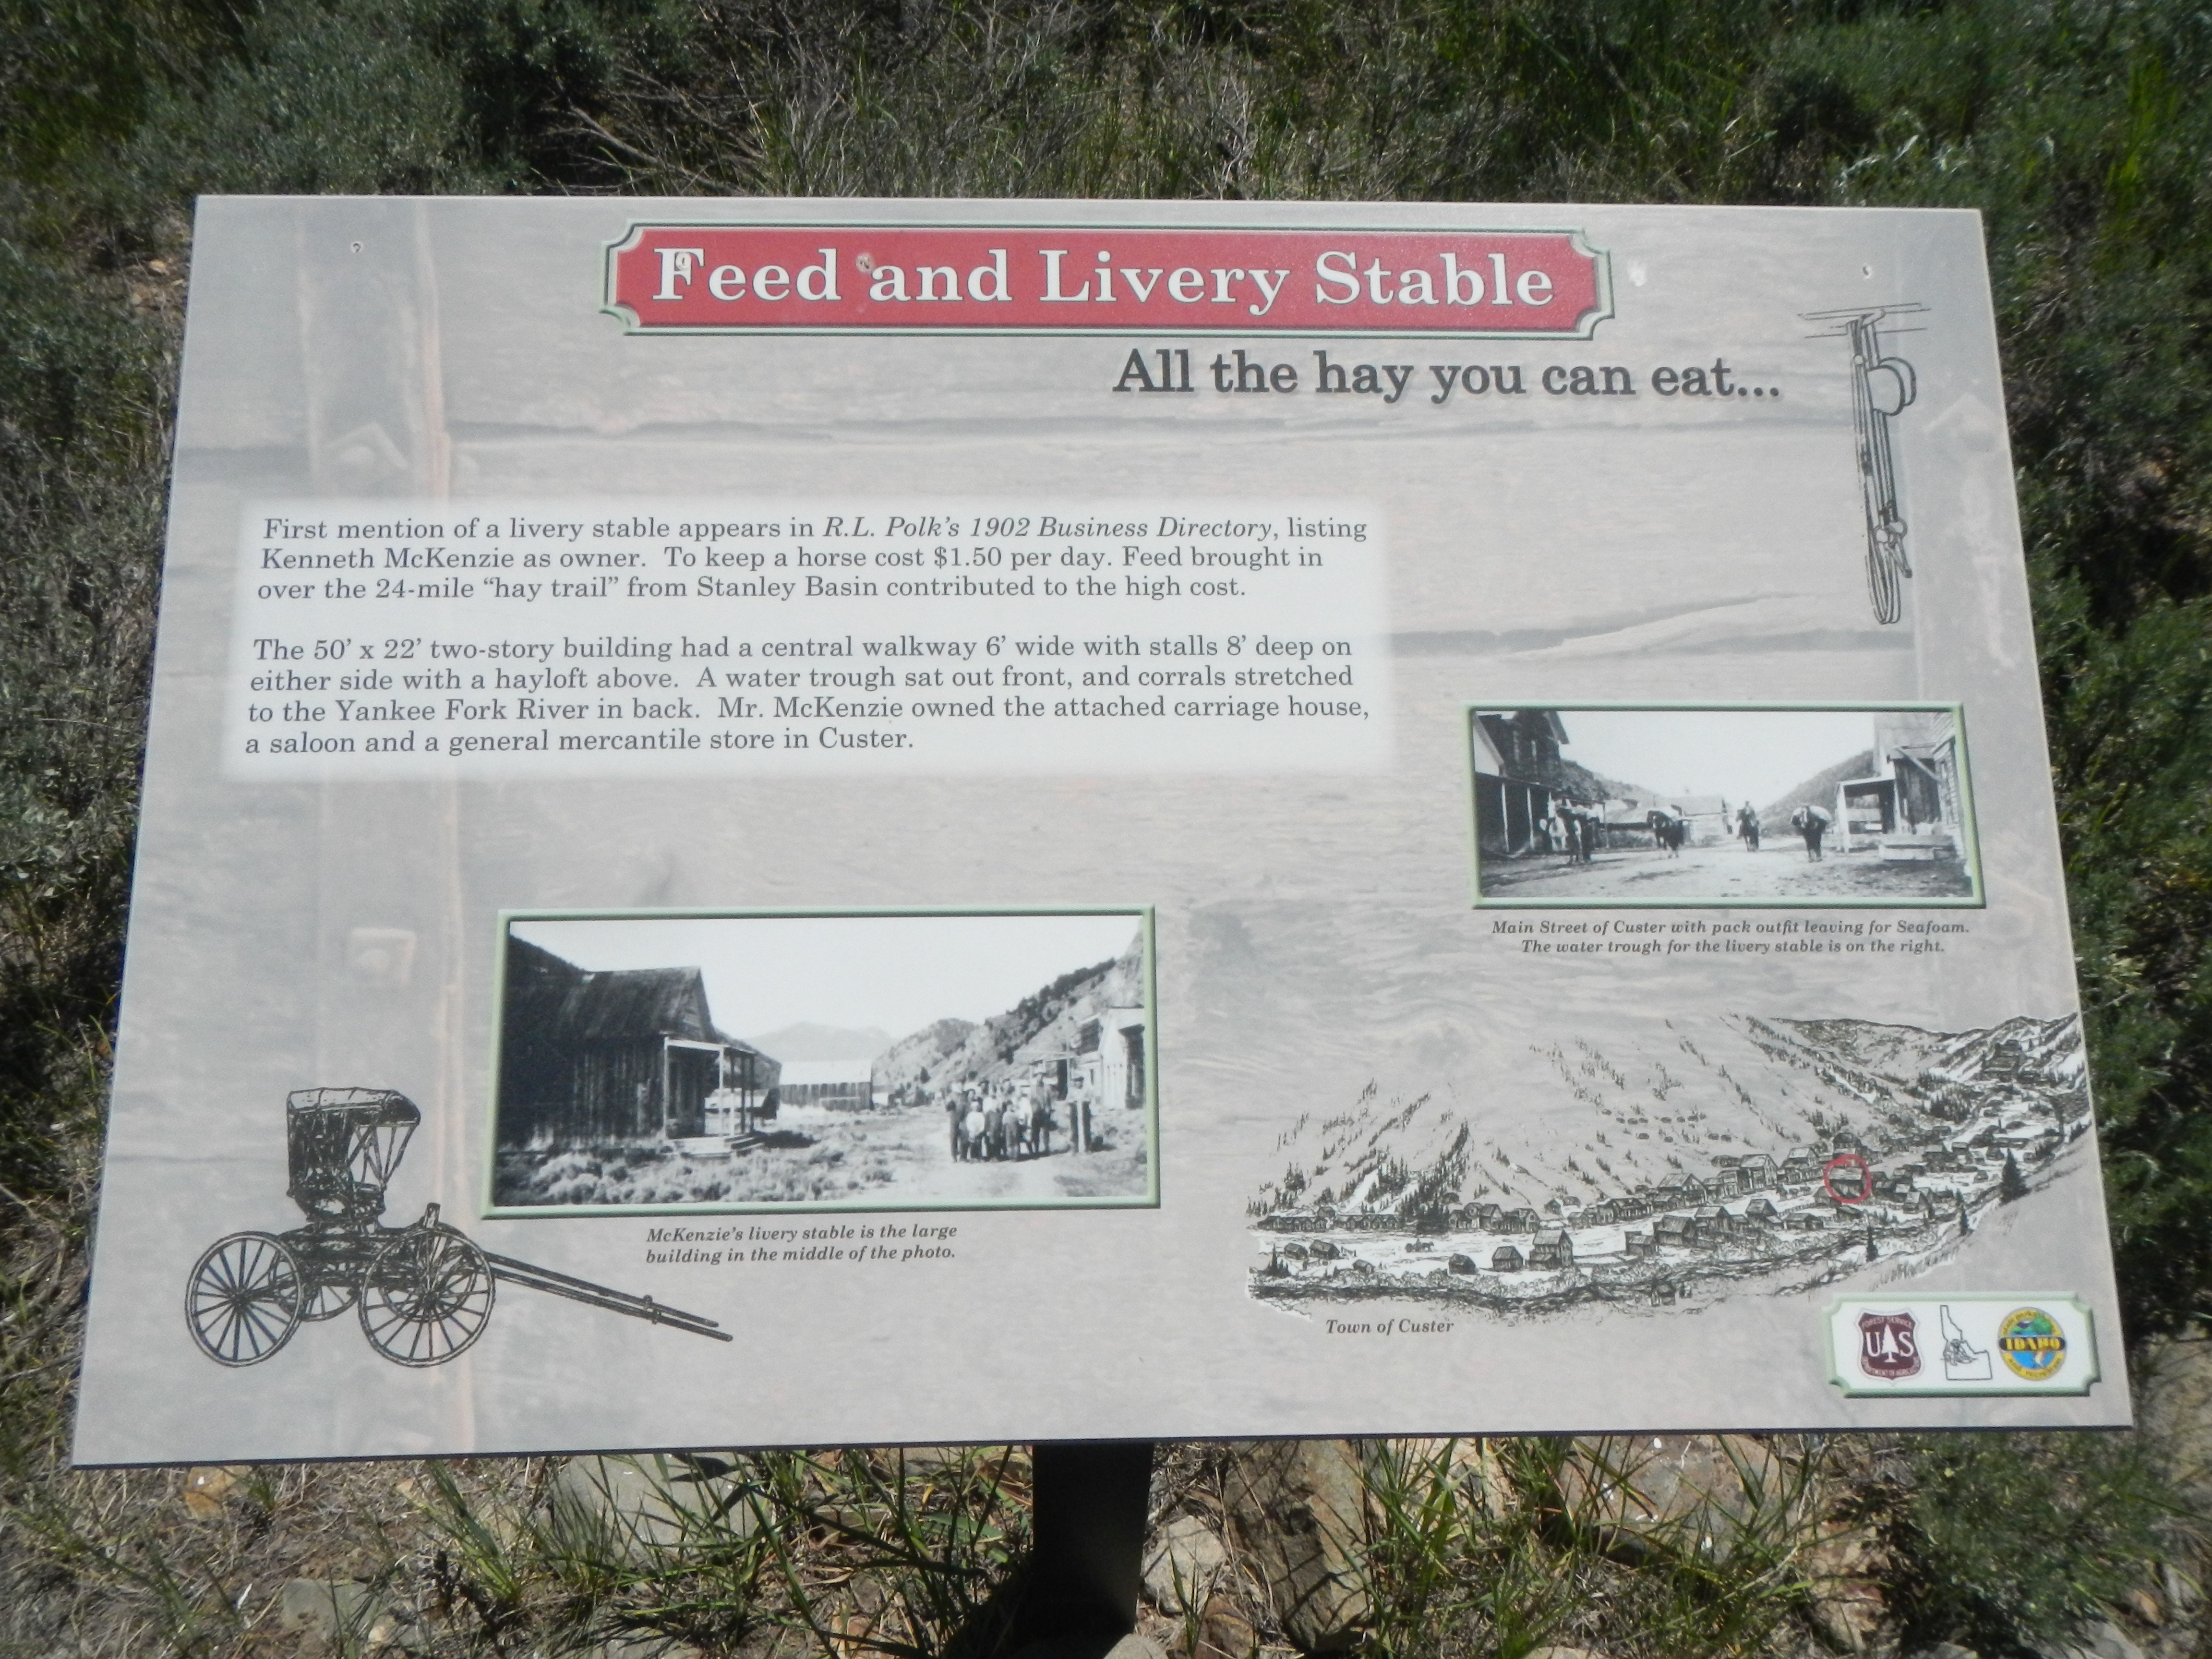 Feed and Livery Stable (site) Marker